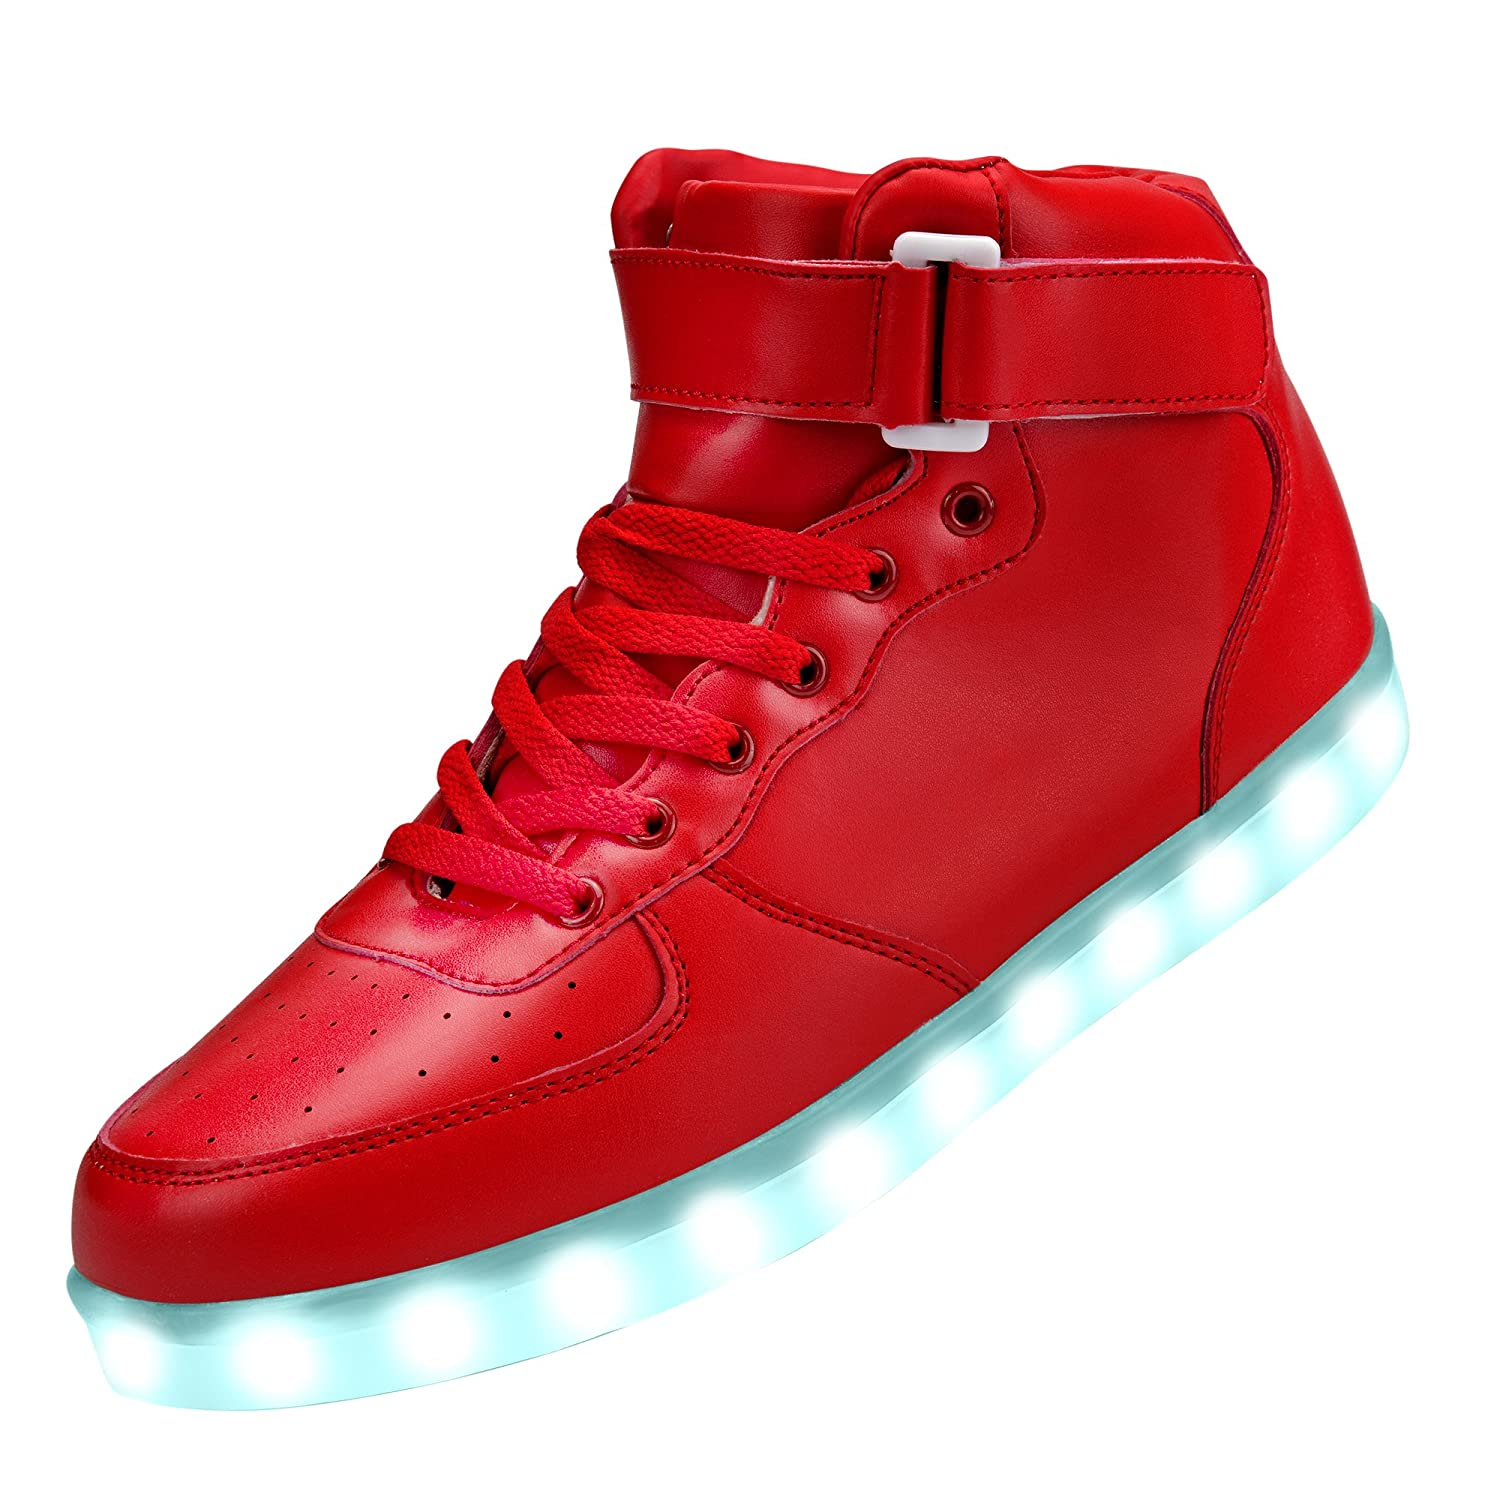 GreatJoy Cool Fun Light up LED Shoes Sneaker 7 Colors USB Charging B01M6759I9 6B(M)US-women/4.5D(M)US-men|Red